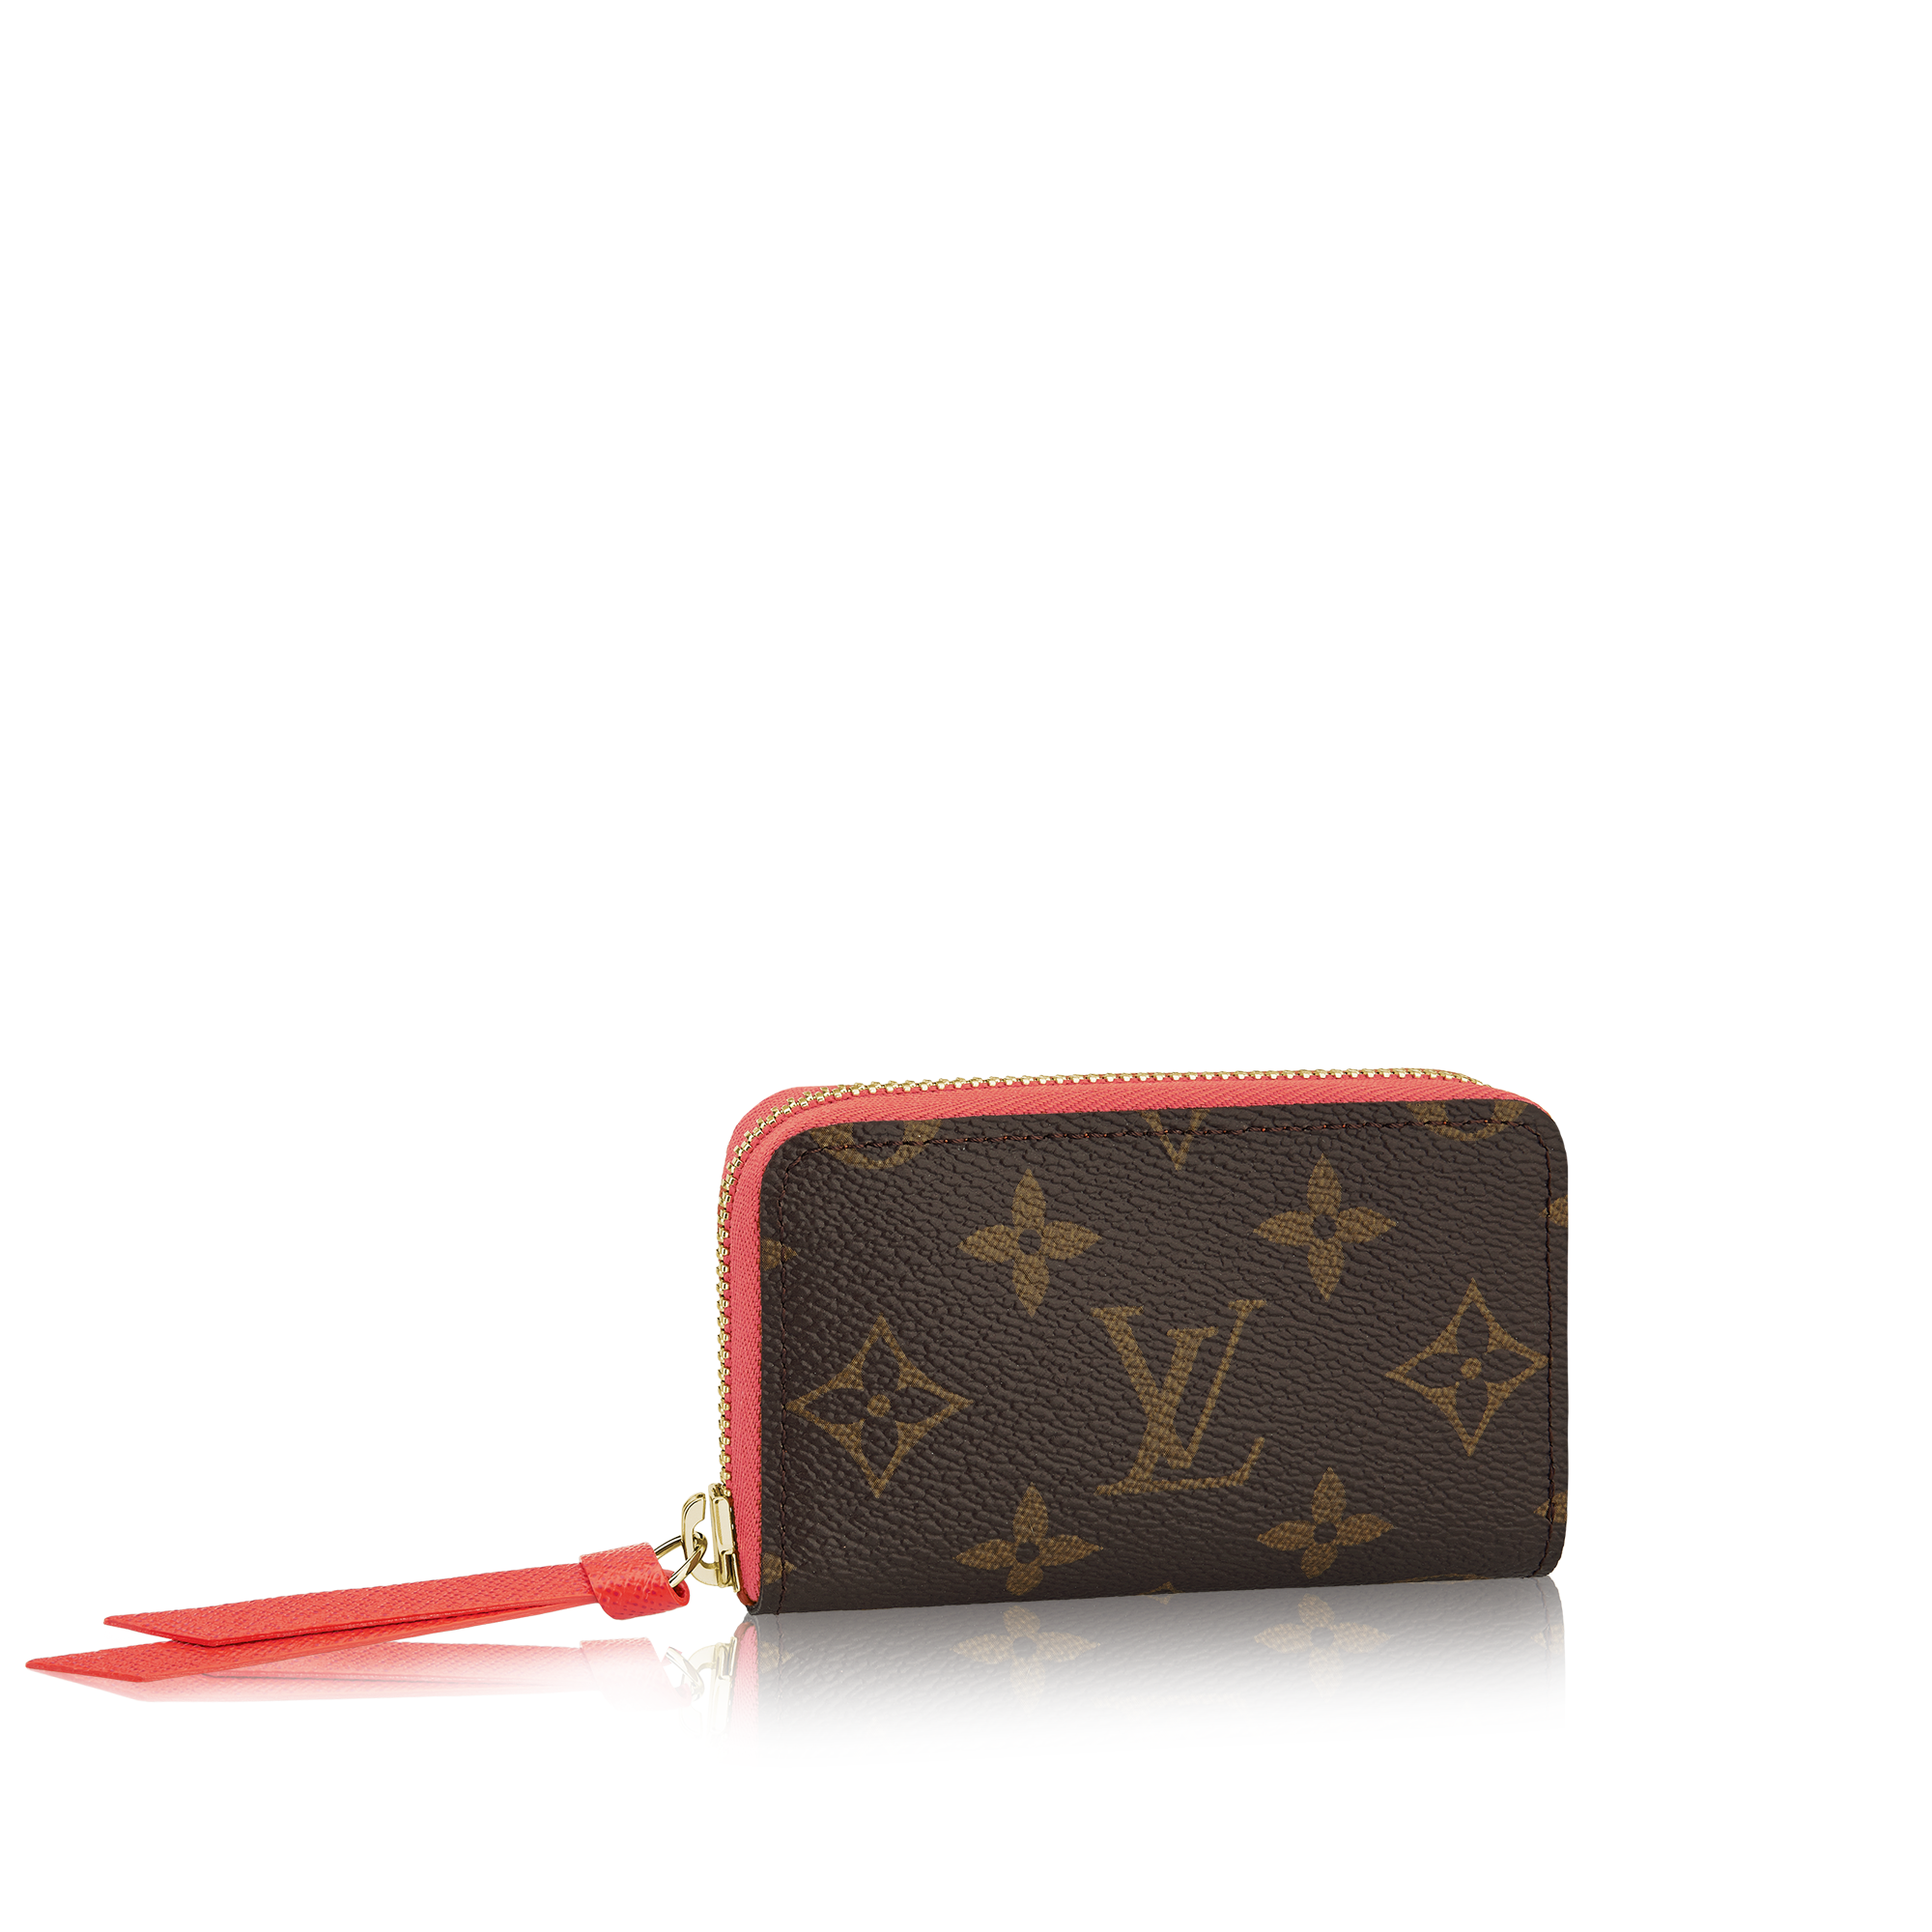 3ce01df86f8 Add a pop of color to your wallet with the Louis Vuitton Zippy Multicartes  card holder. Featuring the iconic canvas Monogram lined with the brightly  colored ...